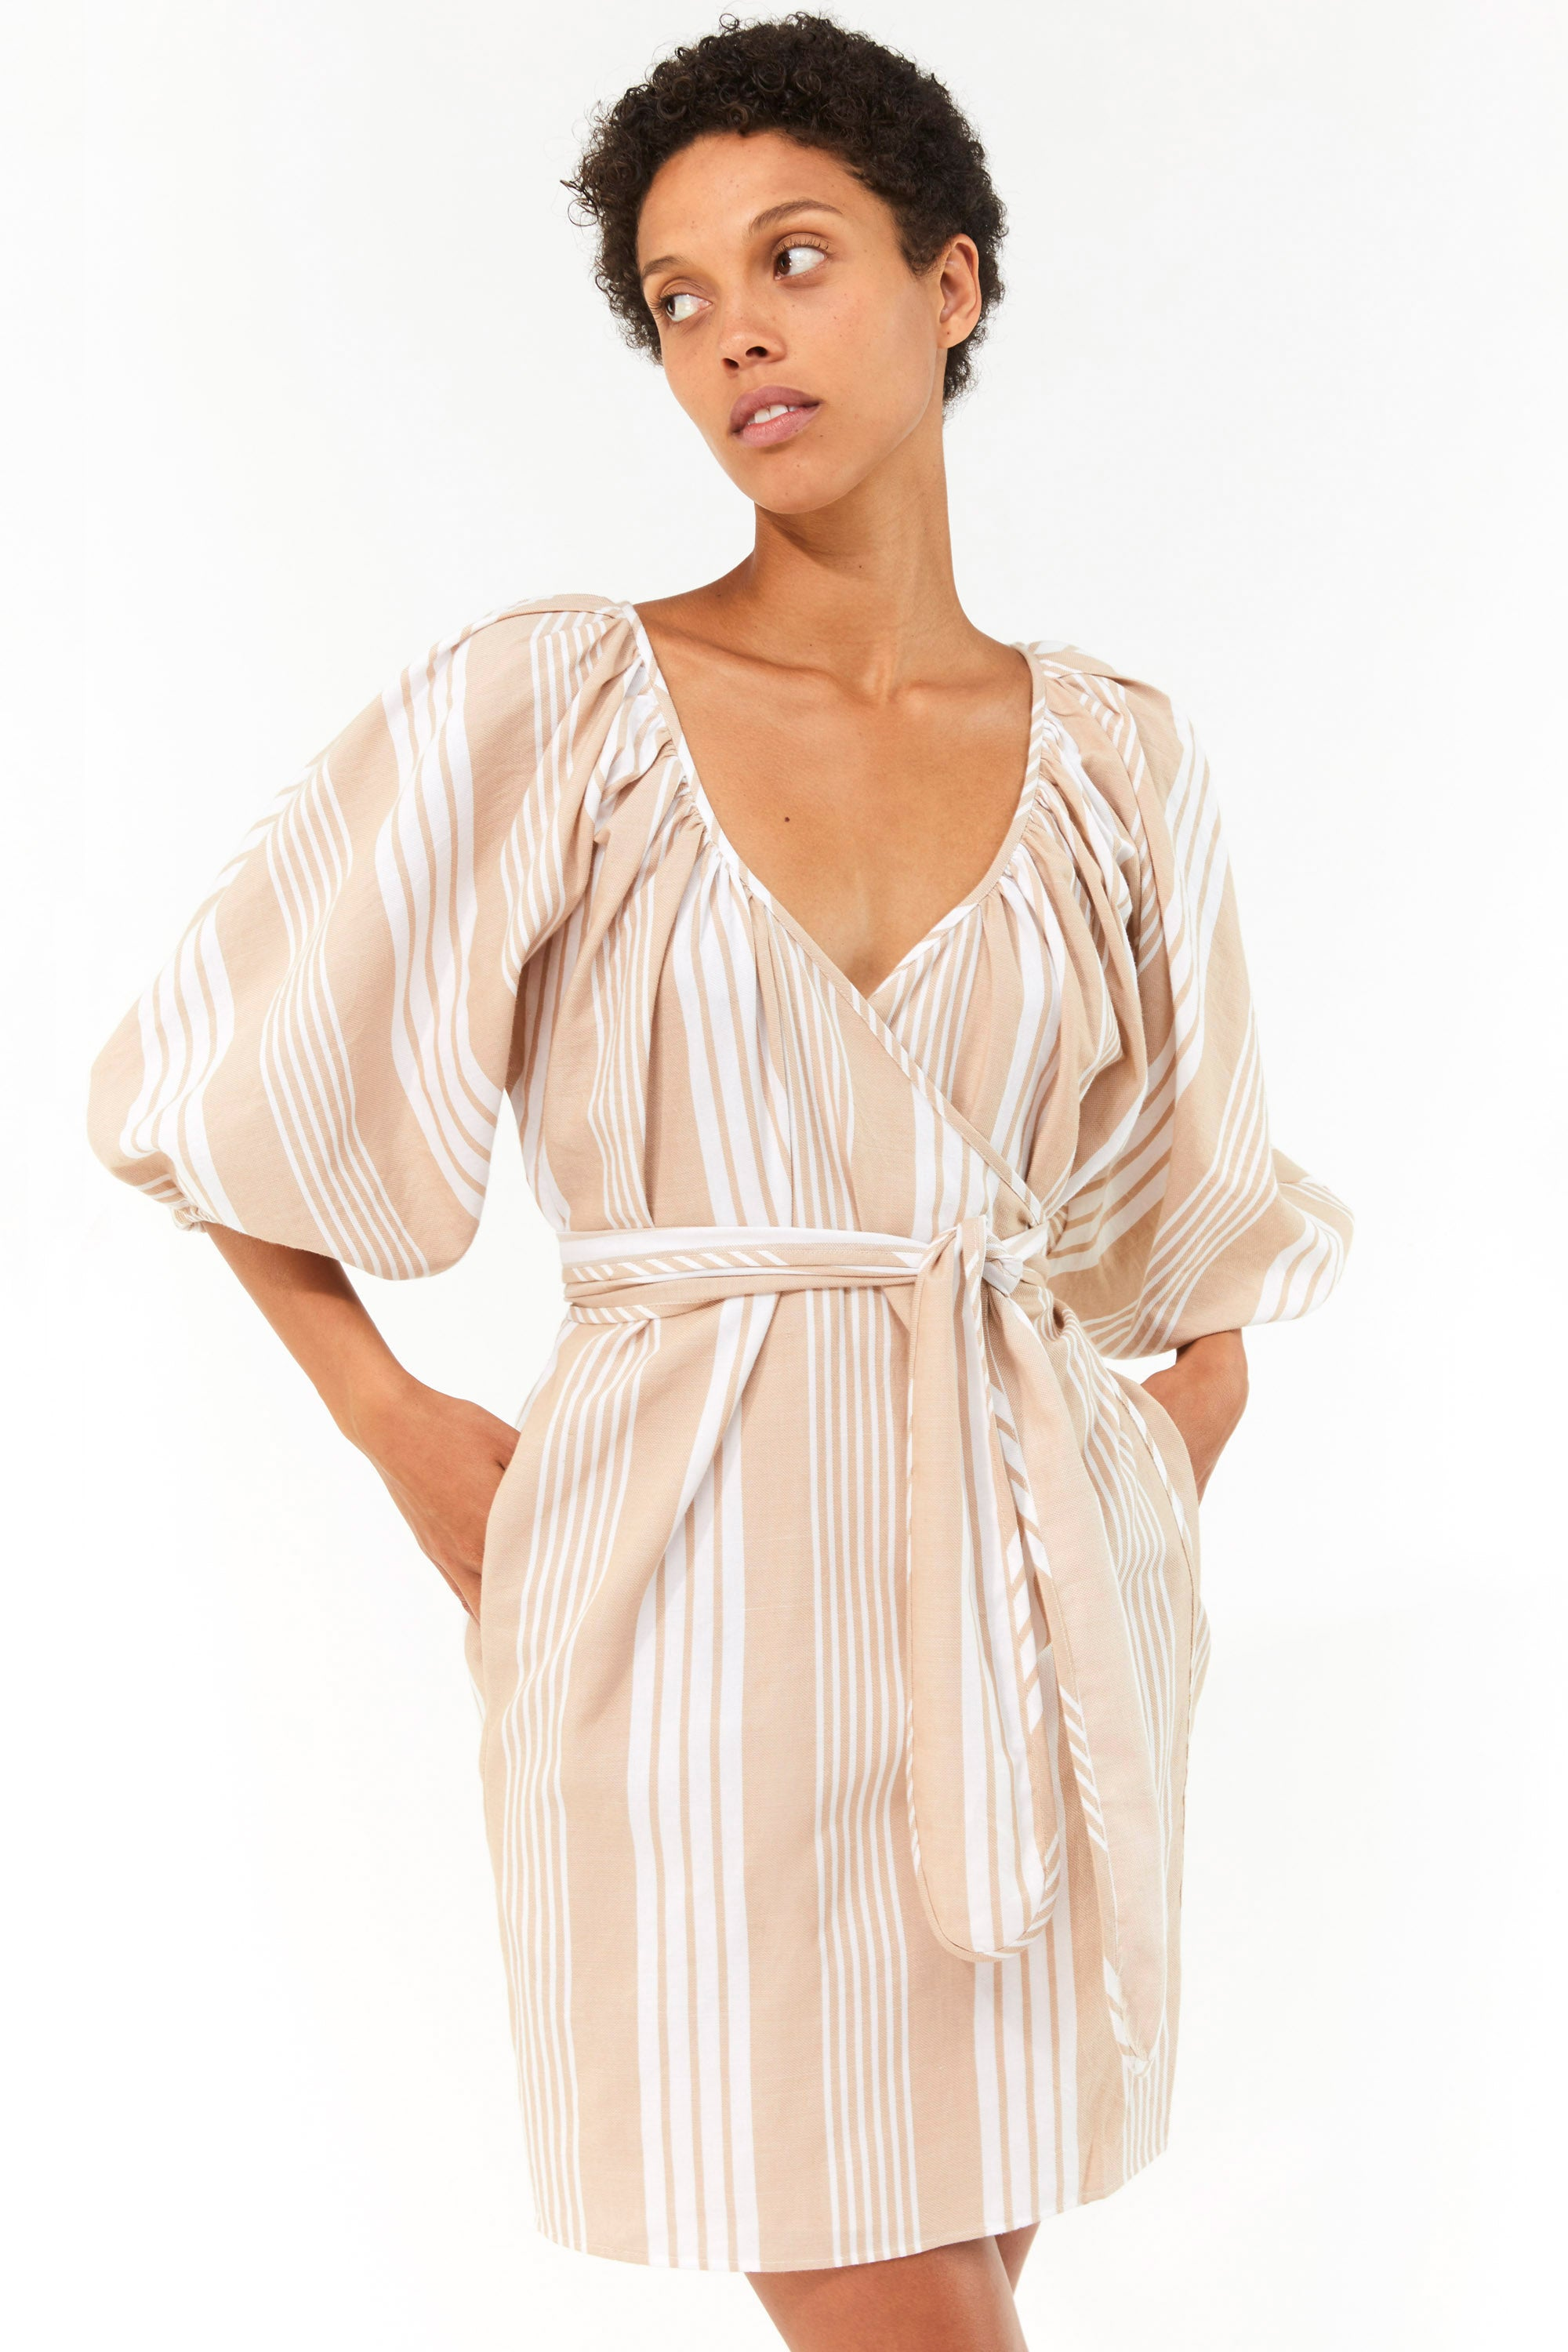 Mara Hoffman White Sand Coletta Cover Up Dress in TENCEL Lyocell and organic cotton (front detail)